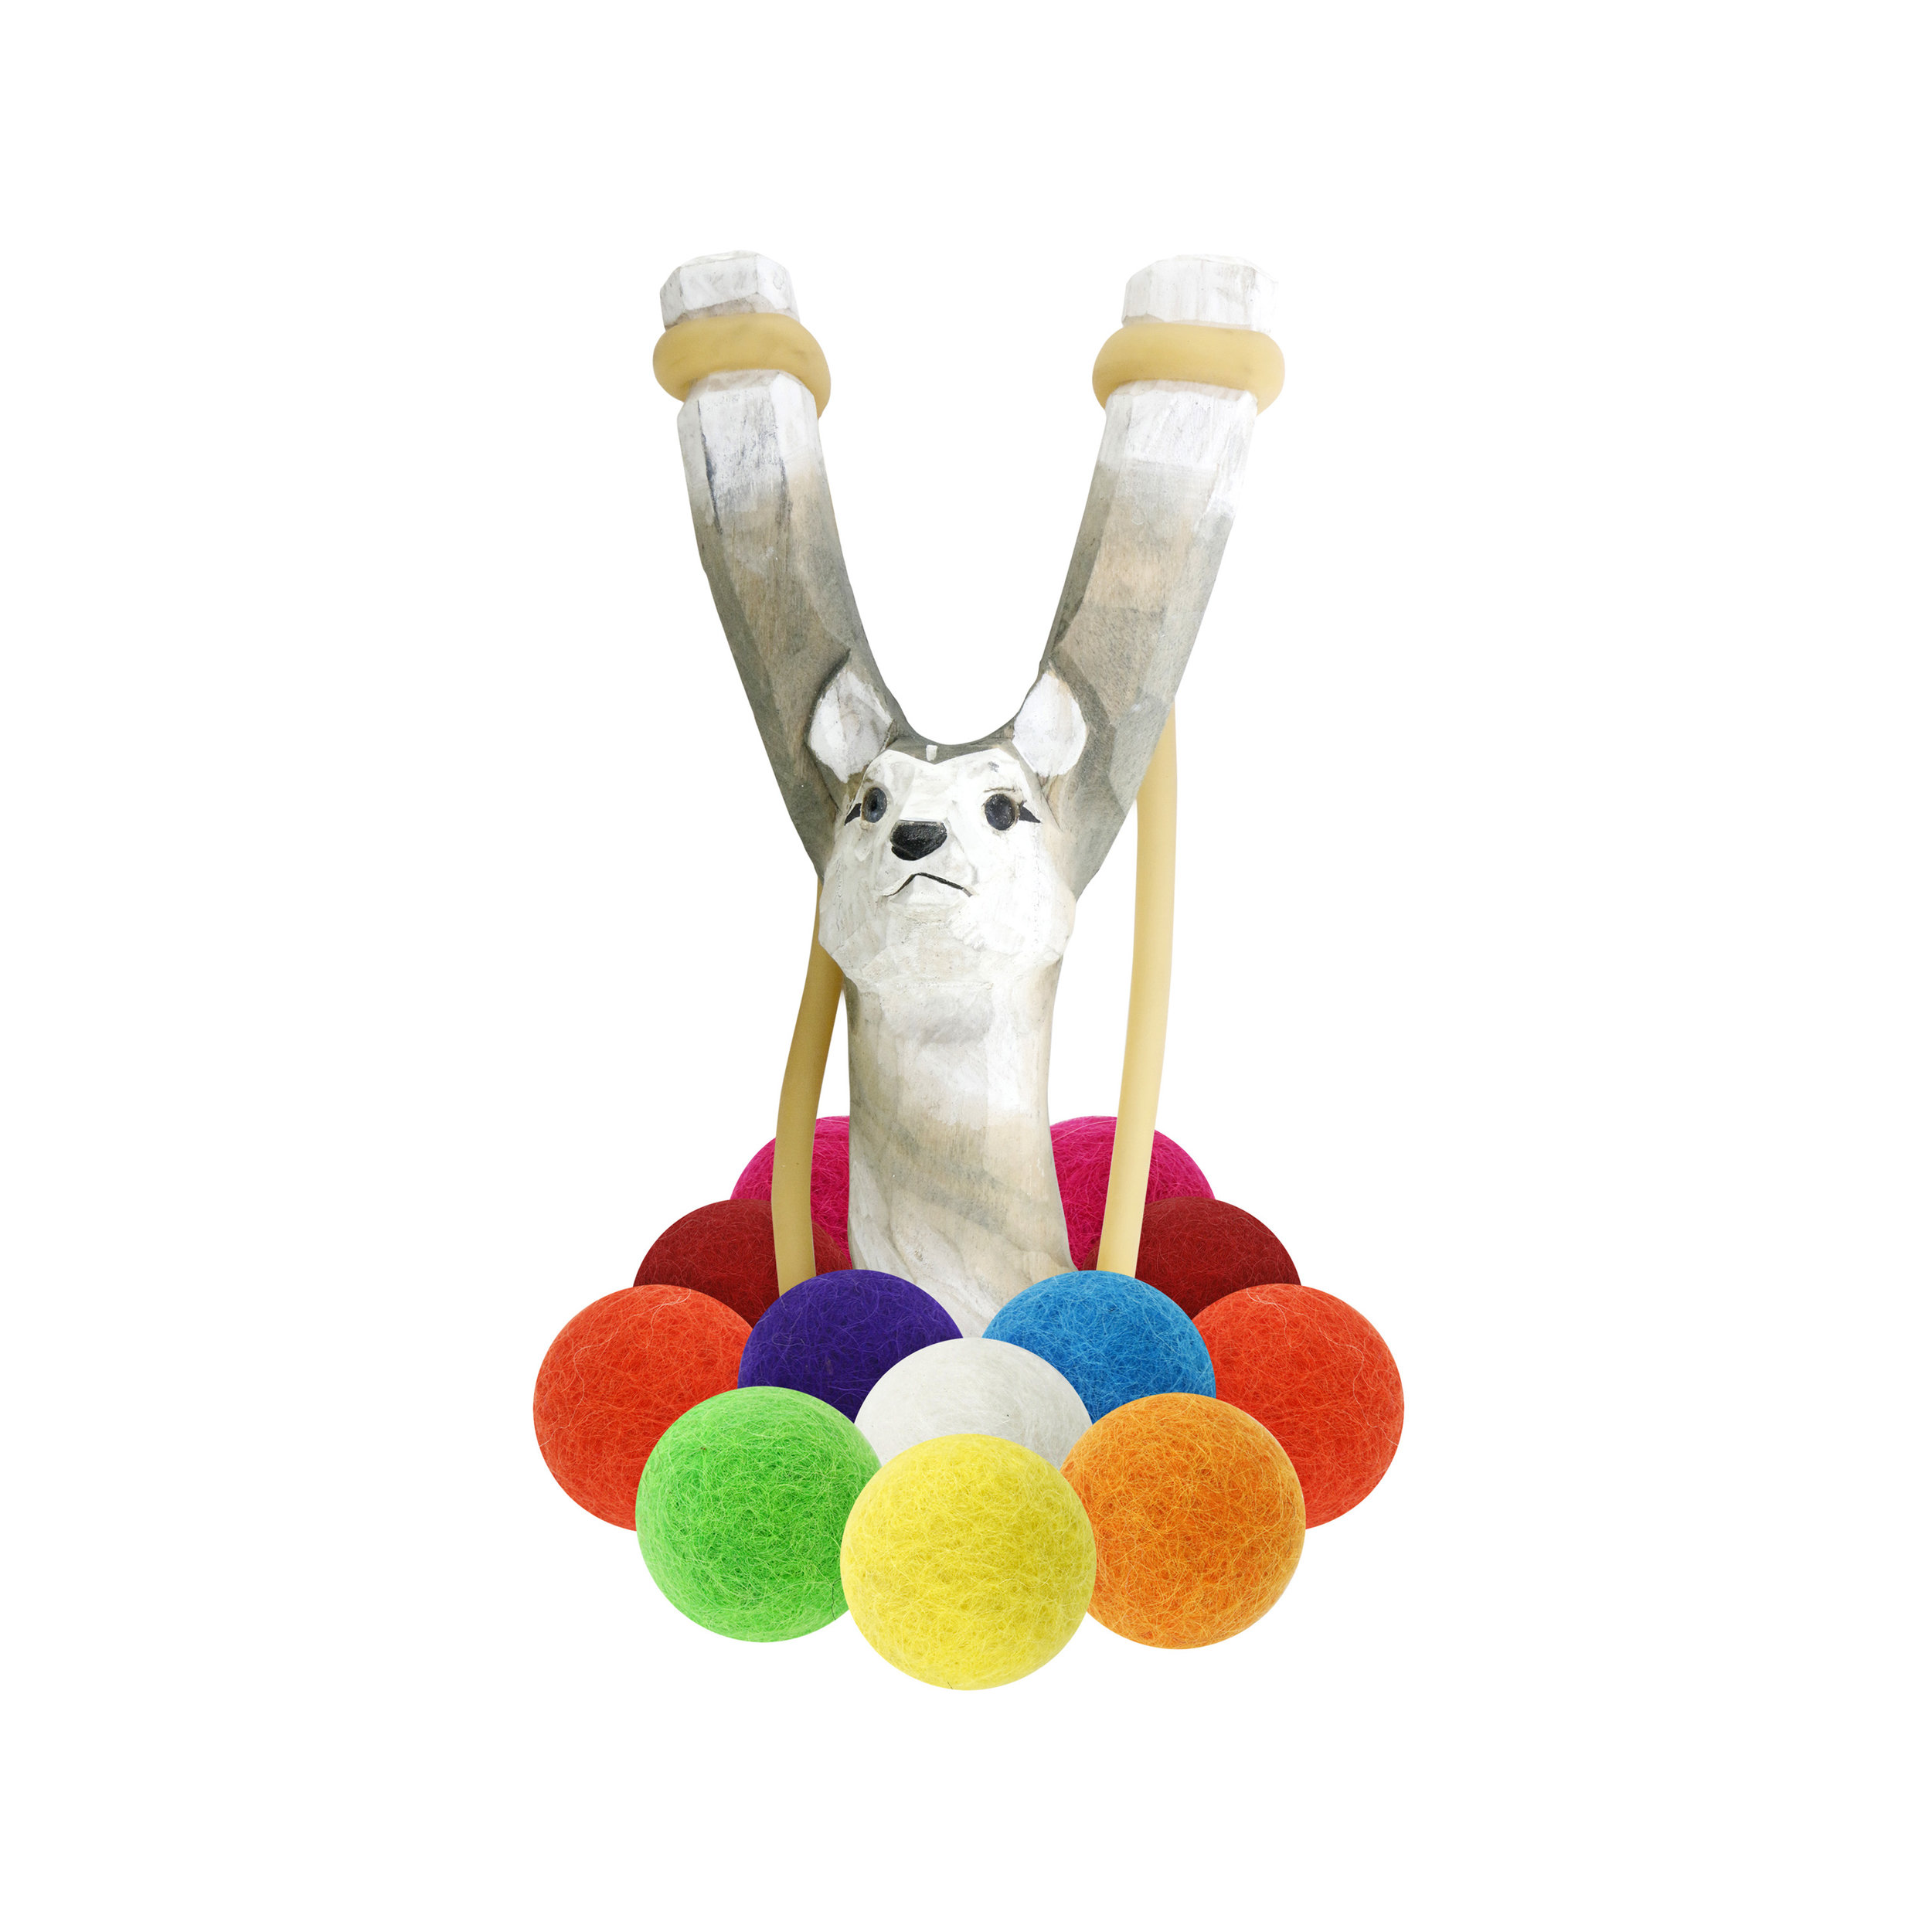 hella-slingshots-wooden-wolf-slingshot-with-multicolored-felt-ball-ammo.jpg